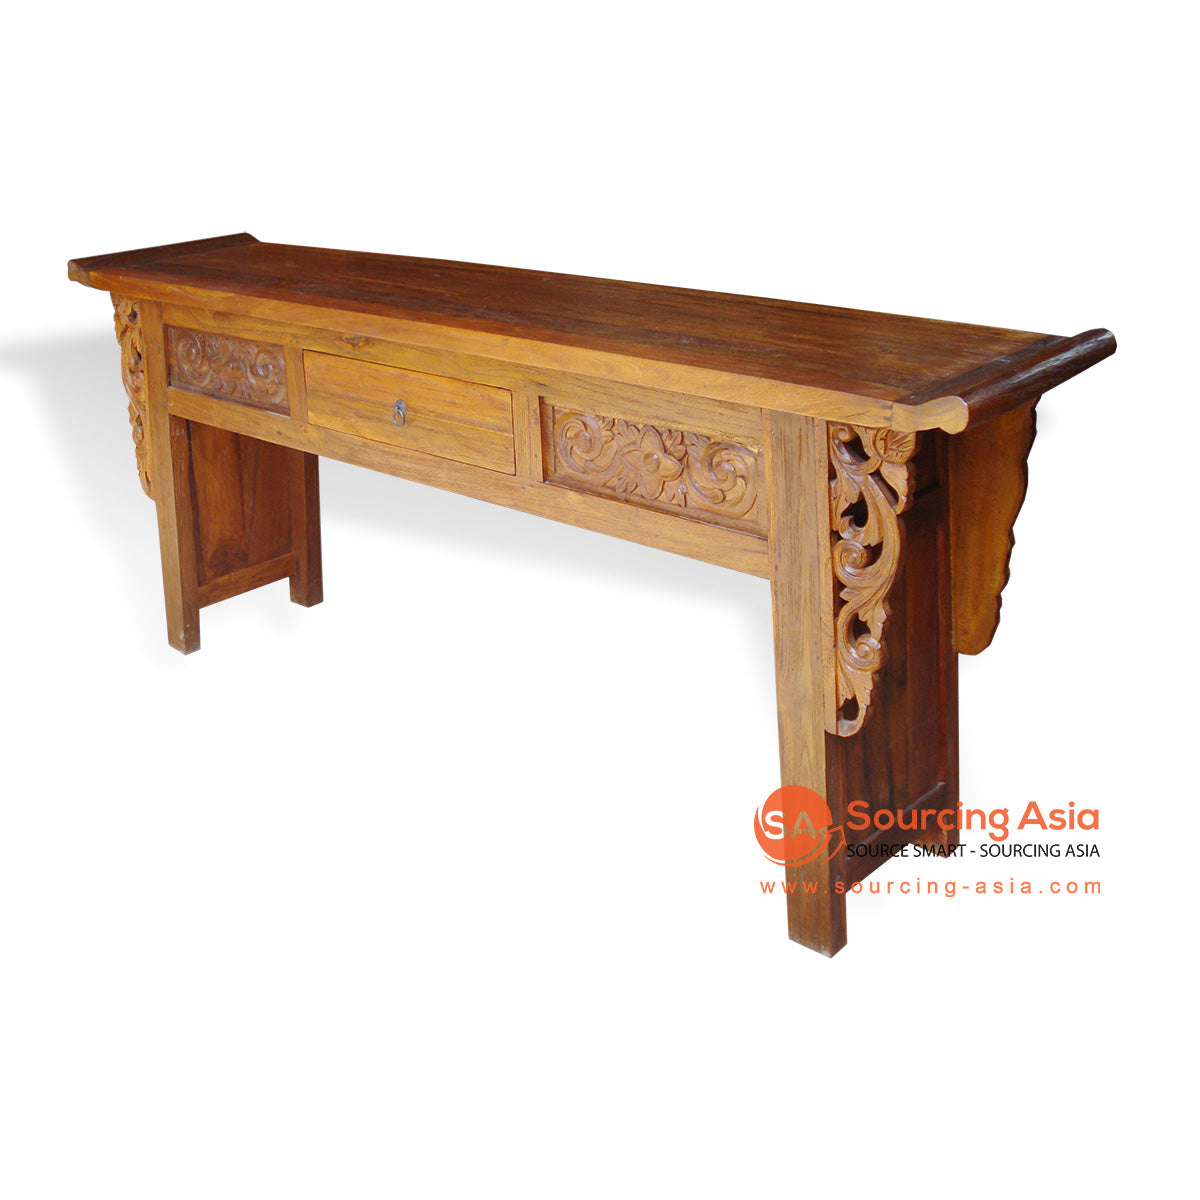 TRG178 CARVED SINGLE DRAWER CONSOLE